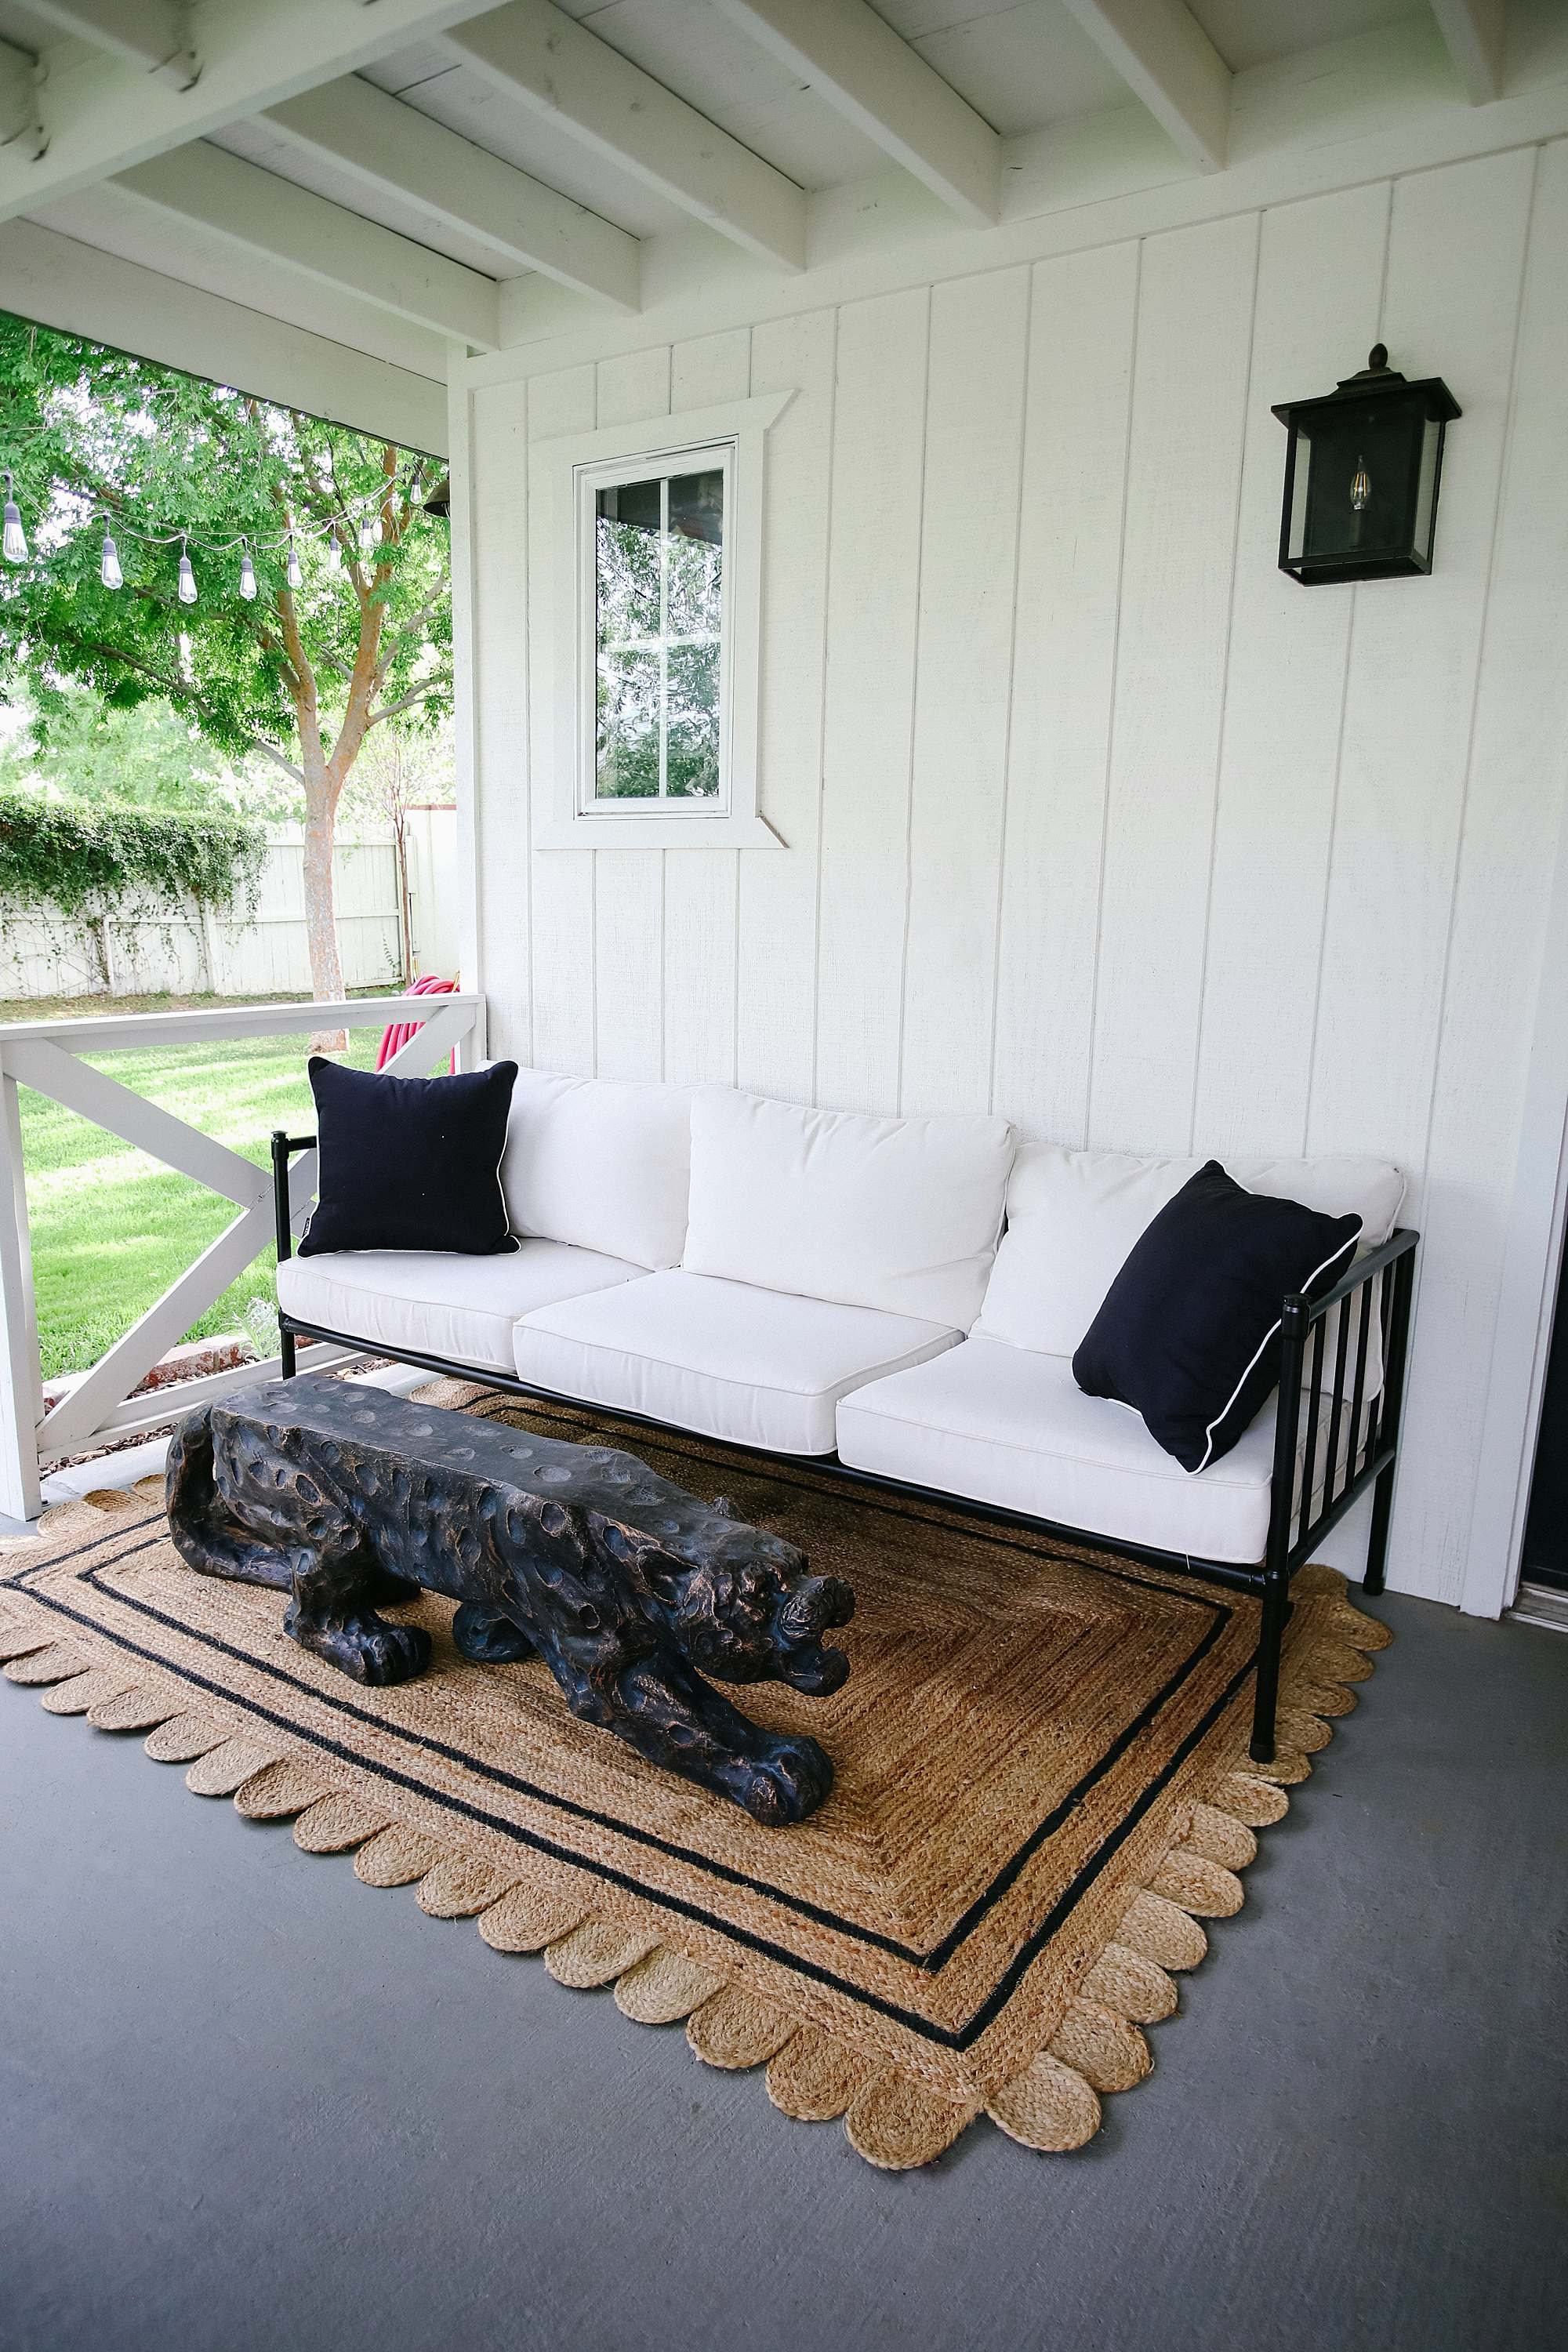 leopard bench turned coffee table, scalloped jute rug Grandmillennial style porch inspiration contemporary English garden white and black romantic feminine backyard porch vibe